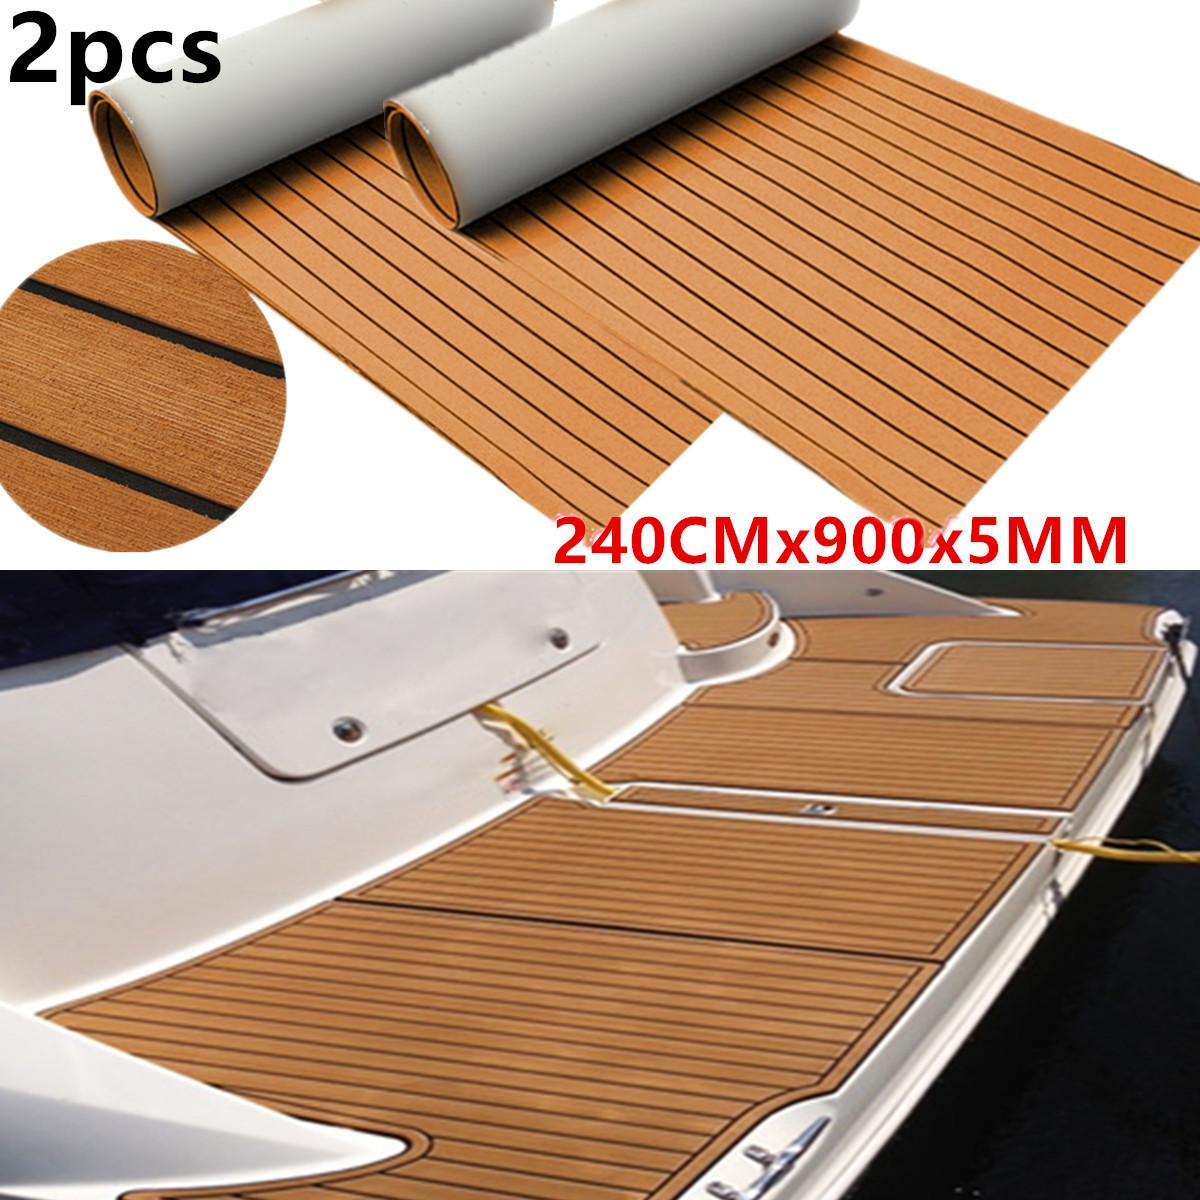 2Pcs 900x2400x5mm EVA Foam Imitated Teak Boat Deck Mat Brown Yacht Flooring Anti Slip Waterproof Mat Recreational Vehicle Pad